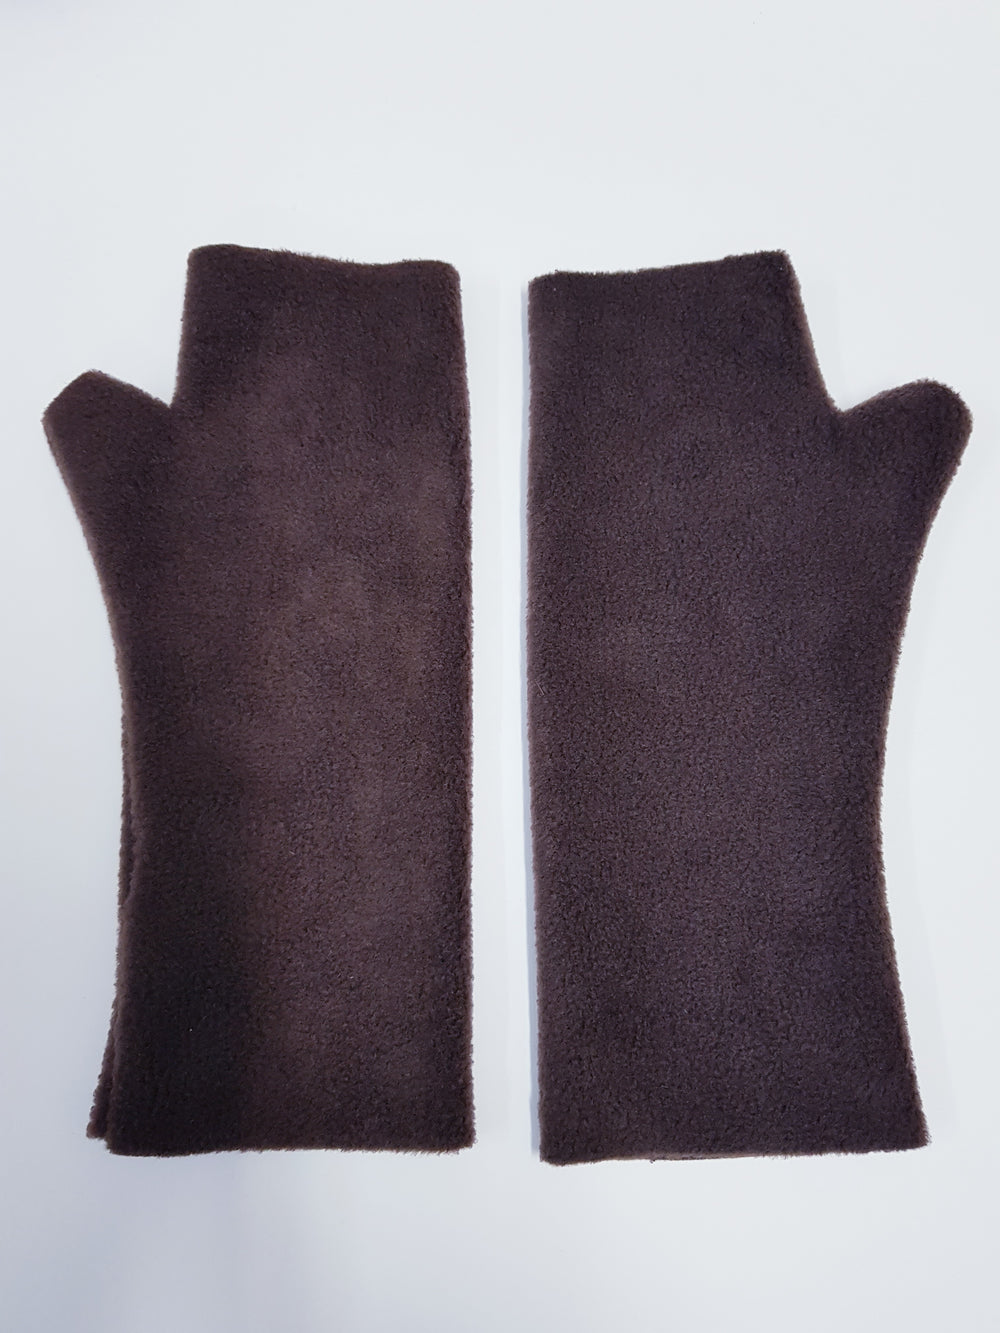 Brown fleece gloves